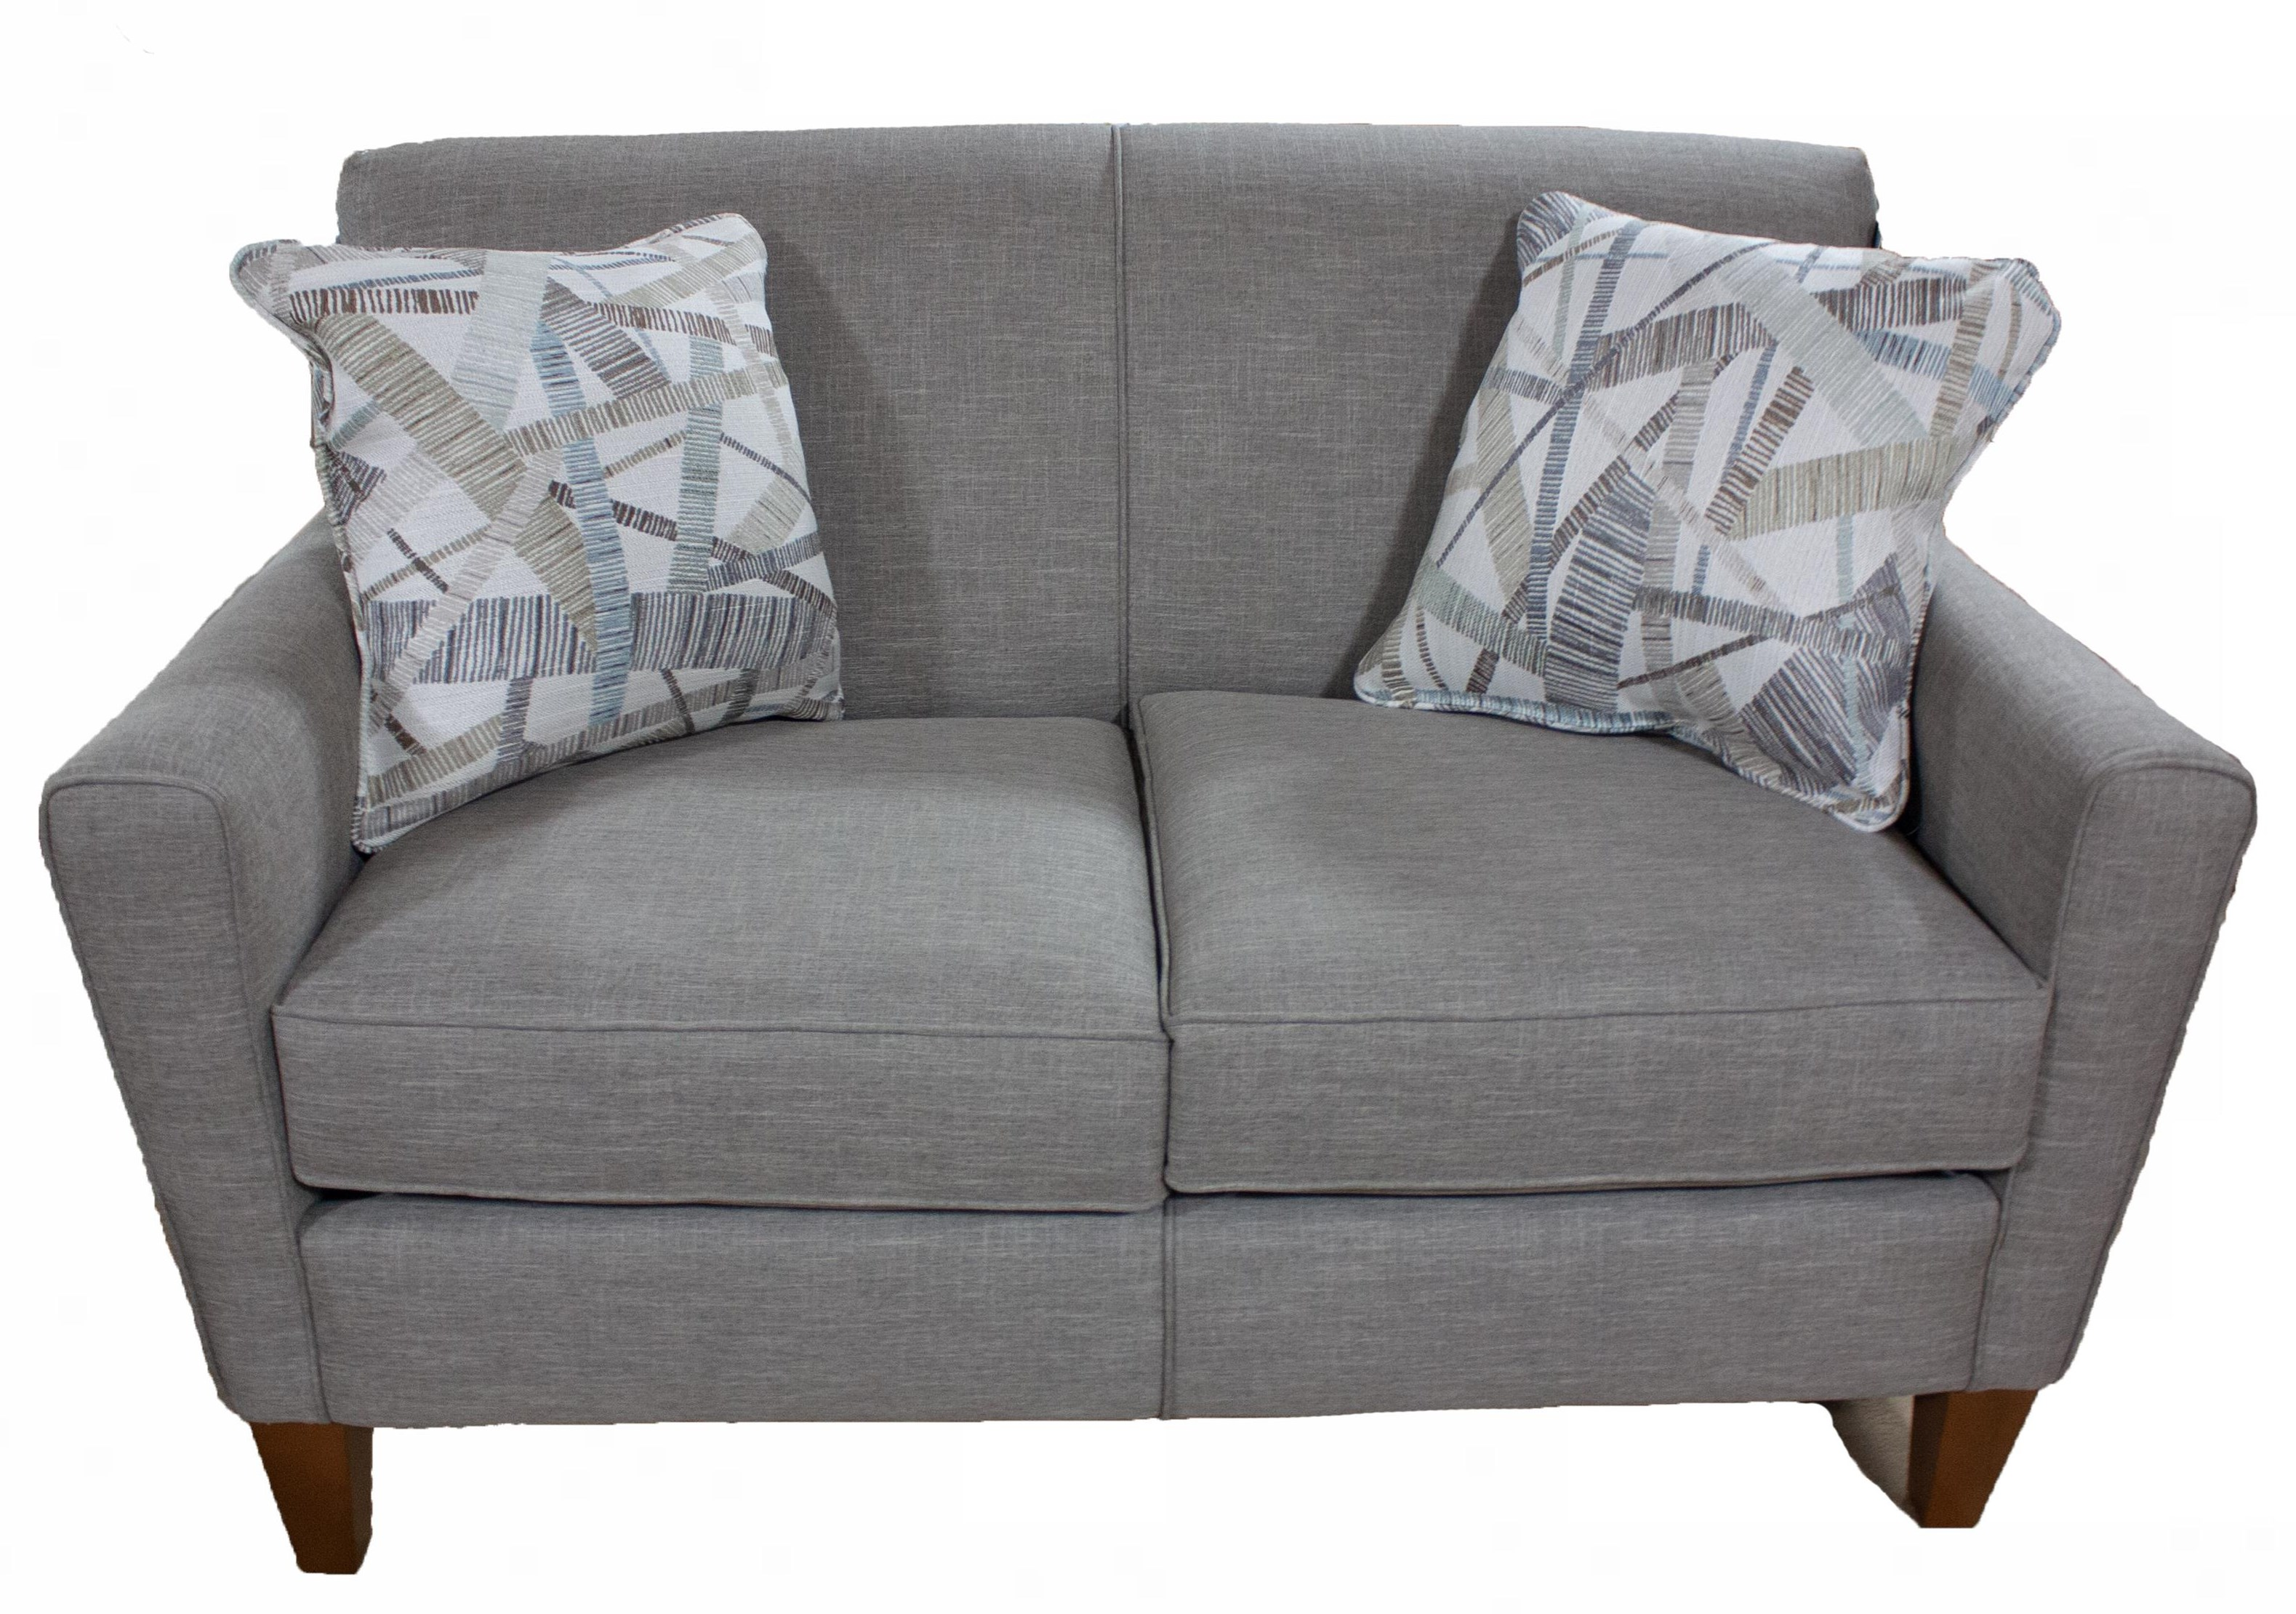 Collegedale Loveseat by England at Esprit Decor Home Furnishings